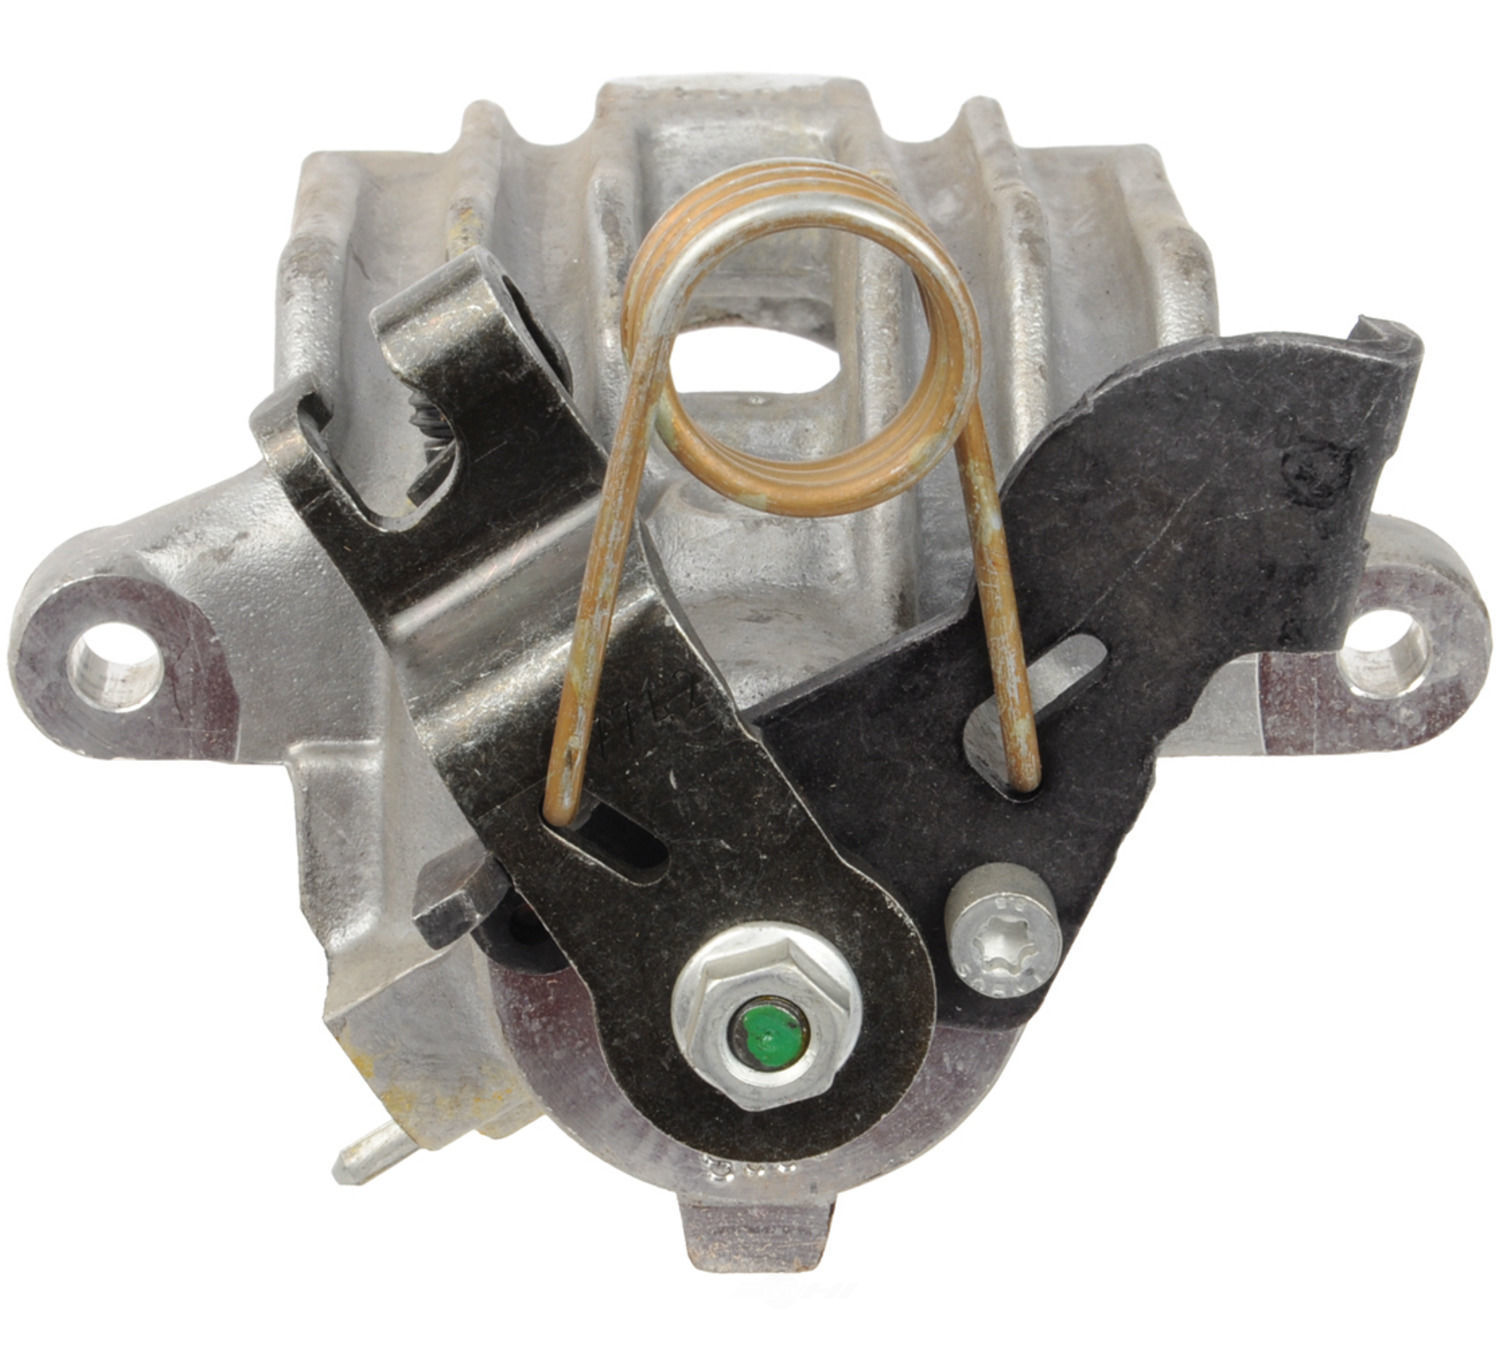 CARDONE/A-1 CARDONE - Reman Friction Choice Caliper (Rear Right) - A1C 19-2890